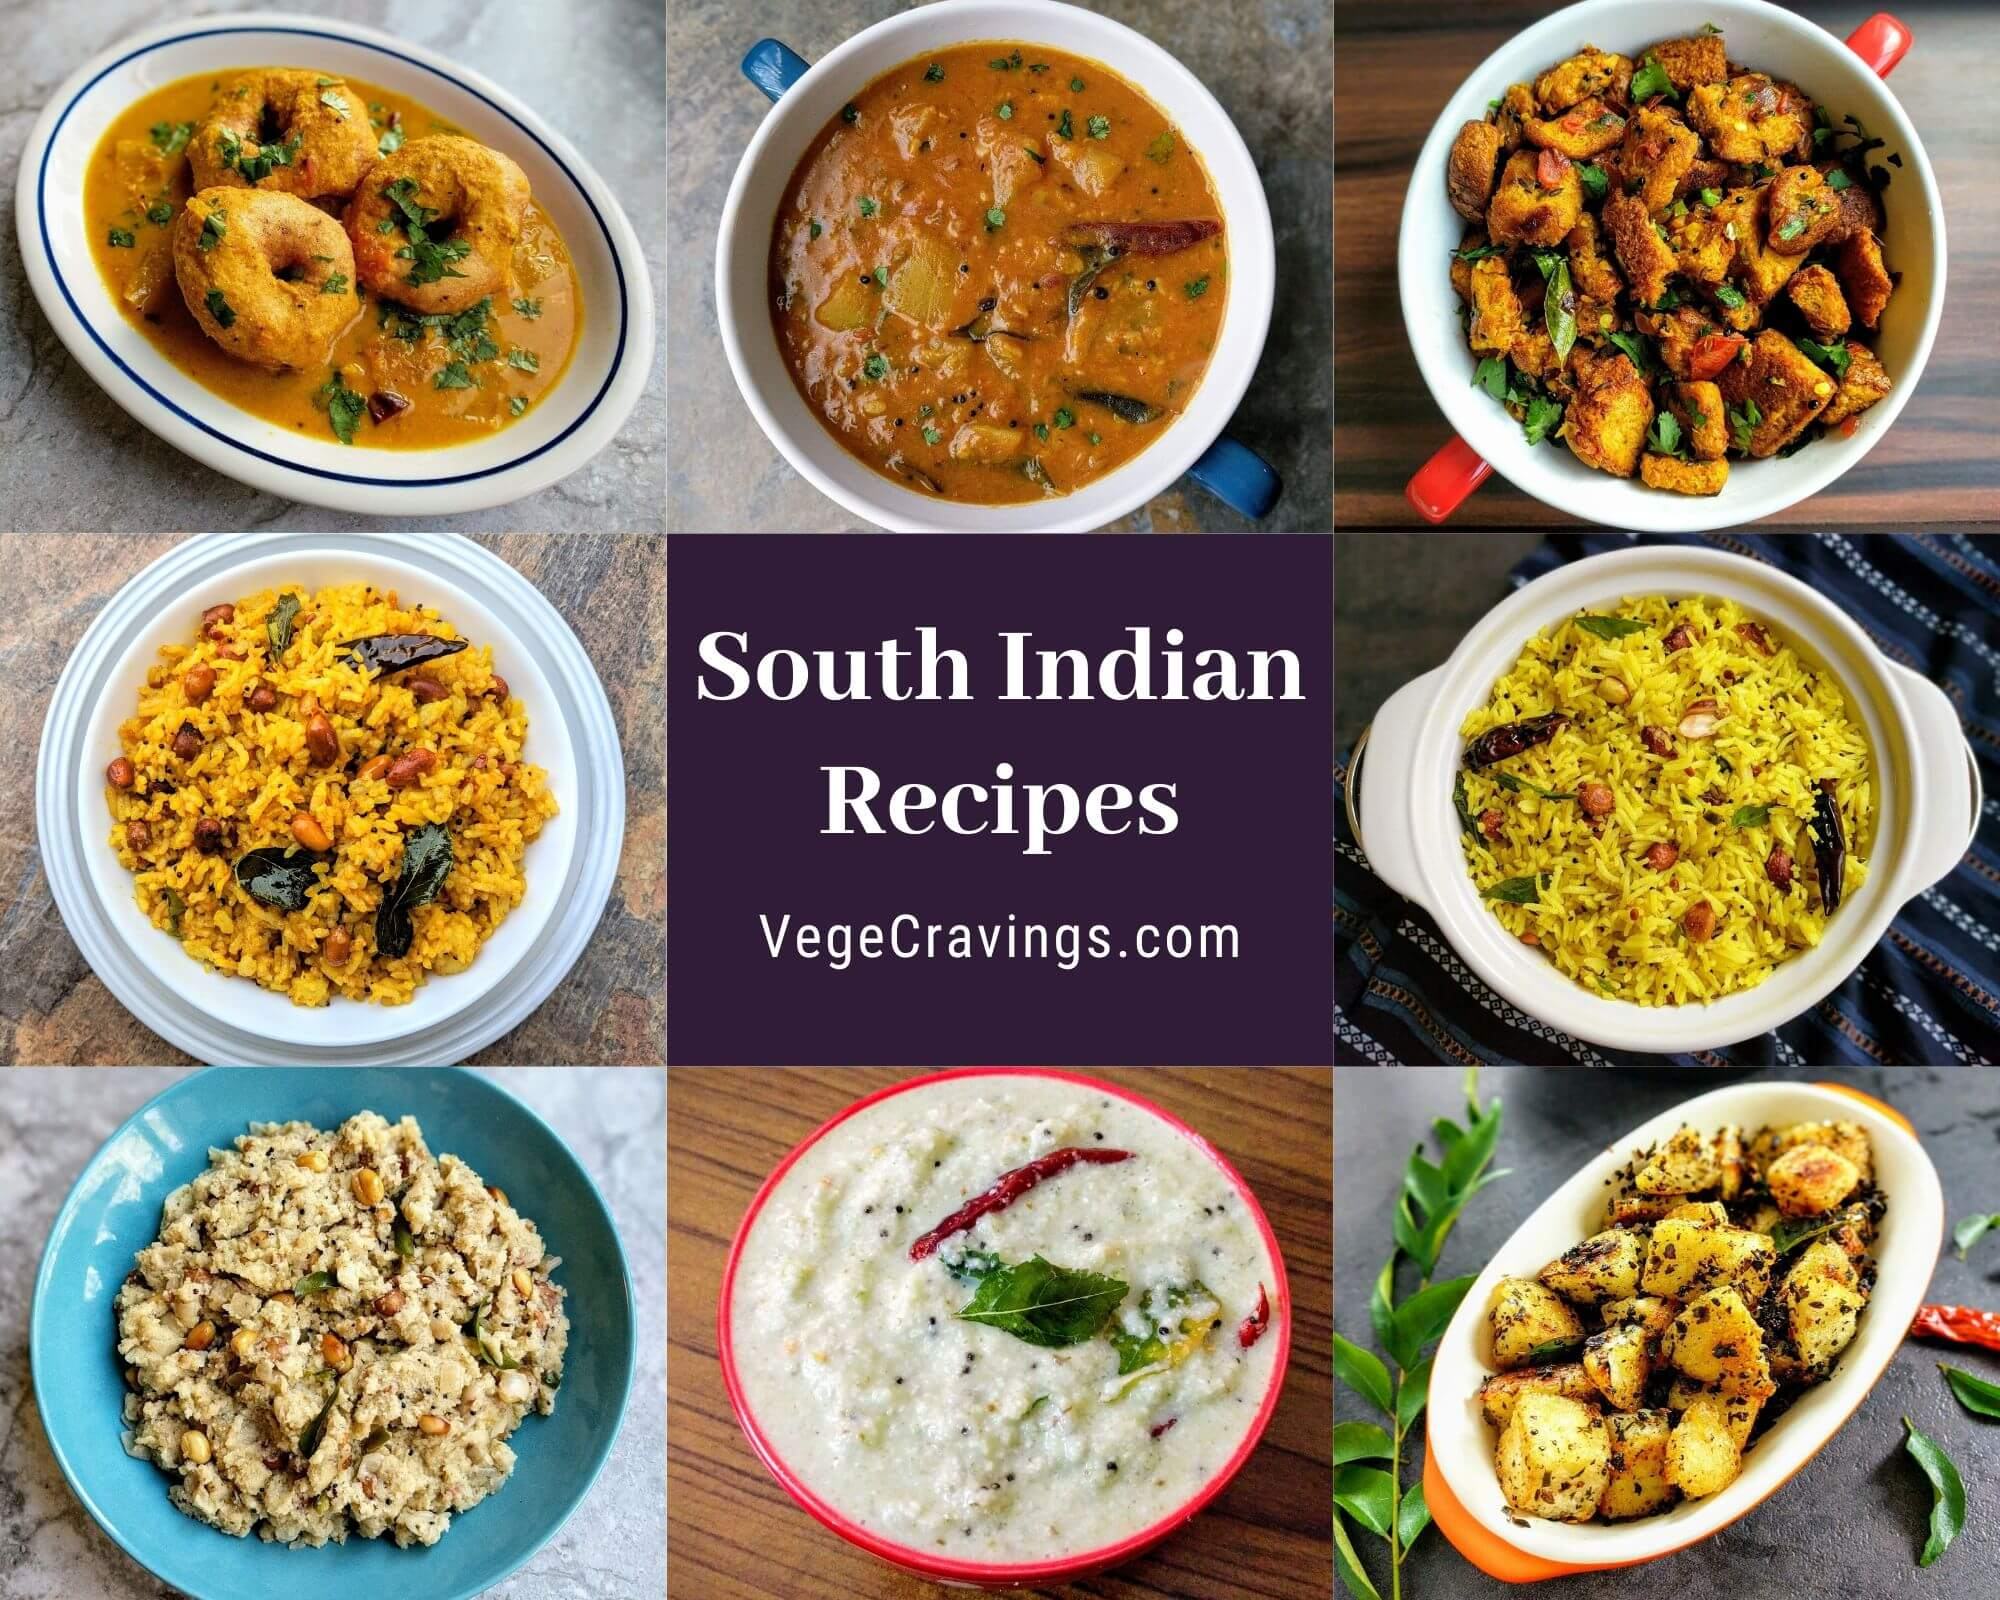 South Indian Recipes generally refer to a myriad of dishes cooked in the Southern states of India like Dosas, Idlis, Uttapams, Upmas, Sambar, Chutneys, Rasam etc. South Indian food strikes a good balance of simplicity, nutrition & flavor. See our collection of delicious South Indian recipes.